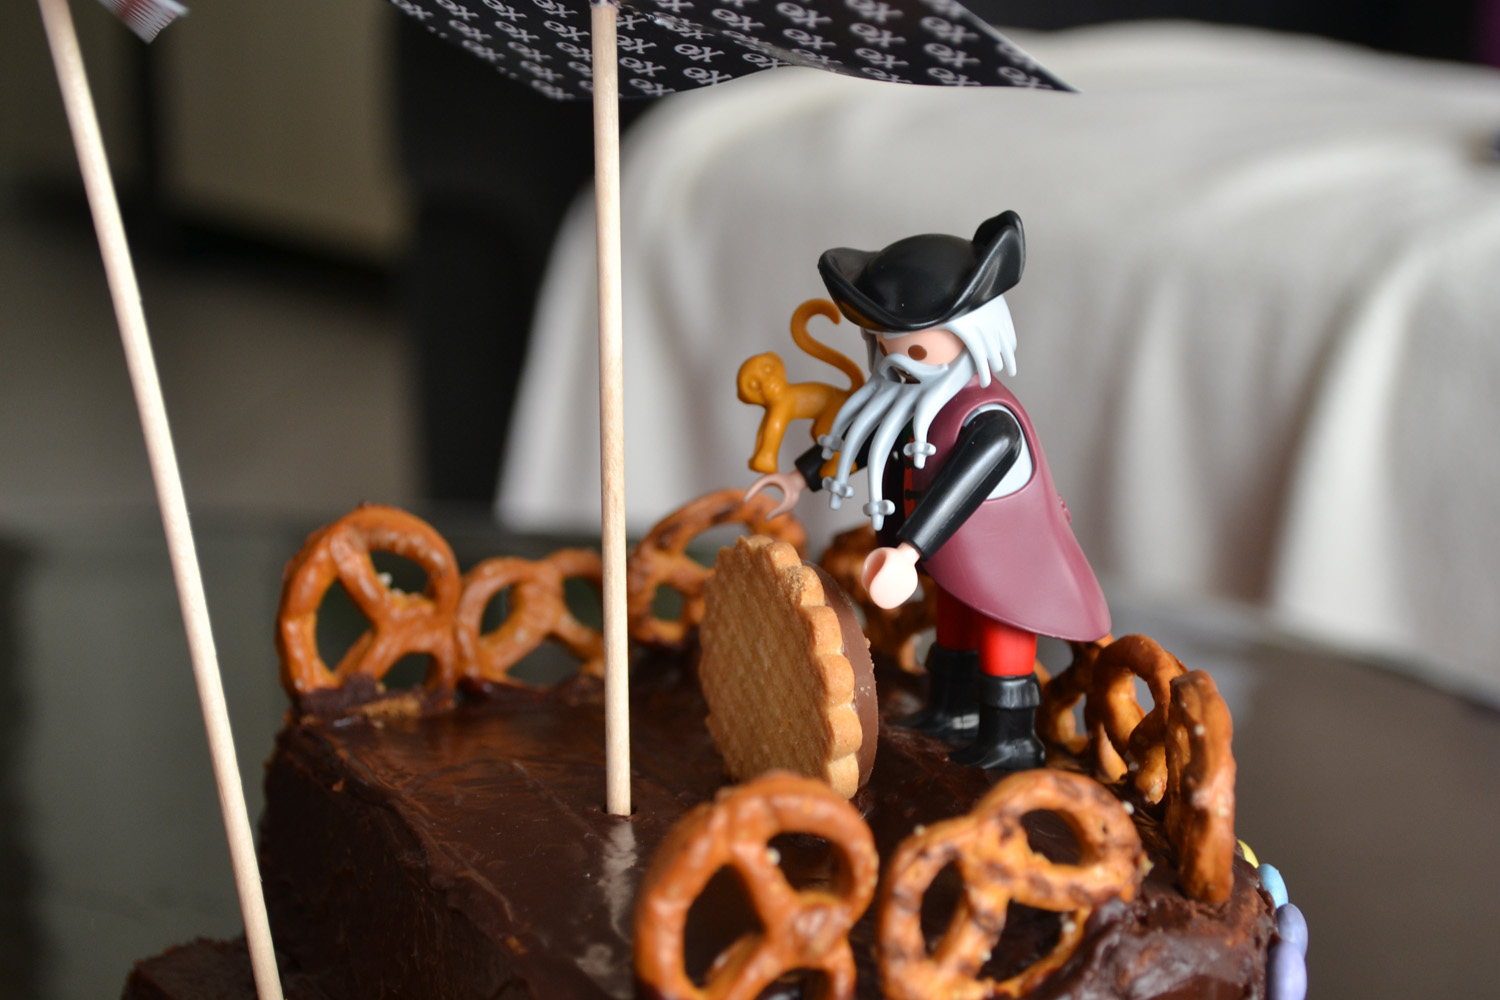 playmobil sur gateau pirate